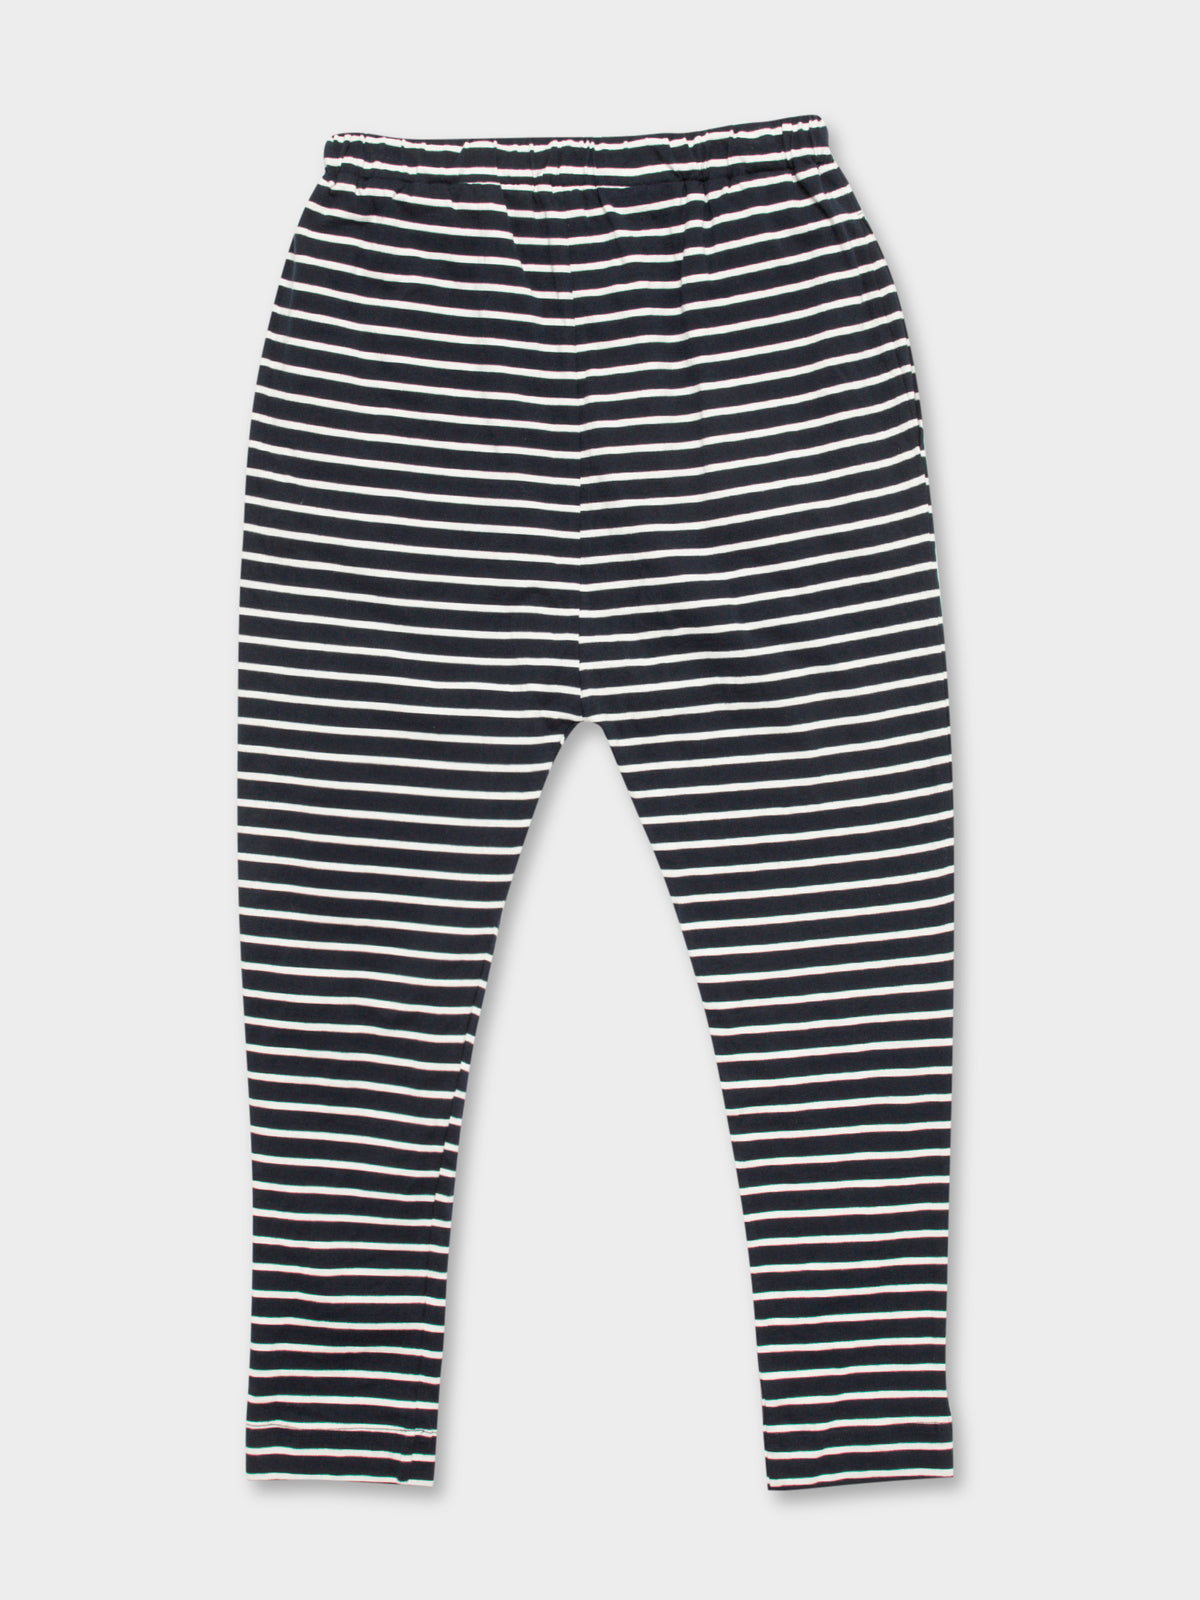 Finn Jersey Pant in Navy Stripe